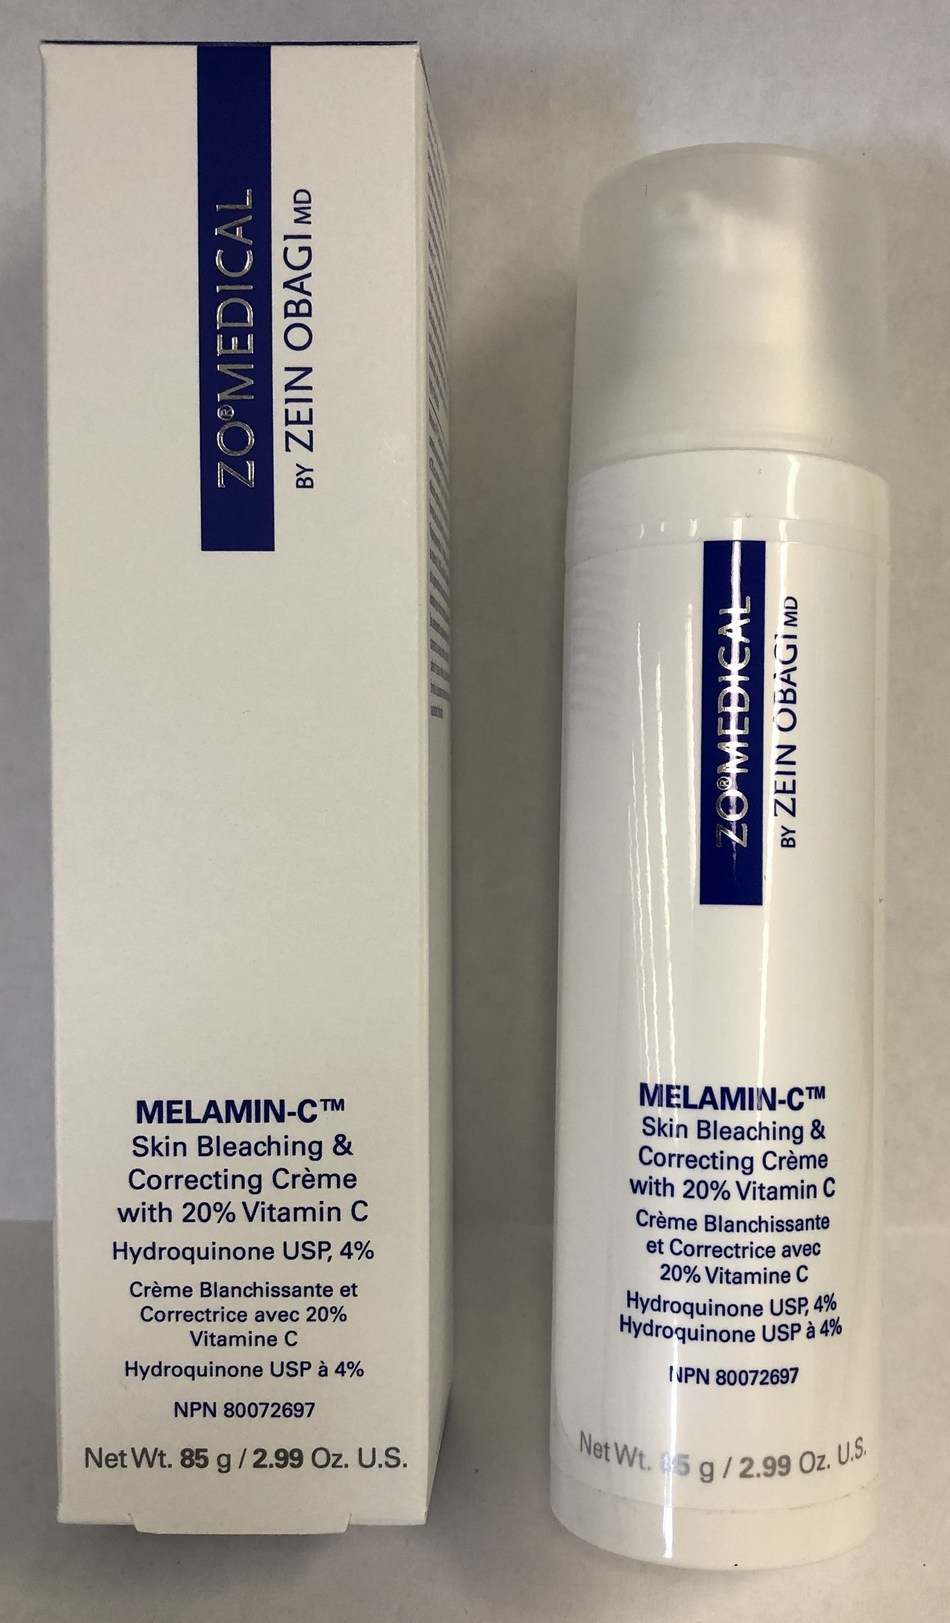 ZO Medical Melamin-C Skin Bleaching & Correcting Crème with 20% vitamin C (CNW Group/Health Canada)